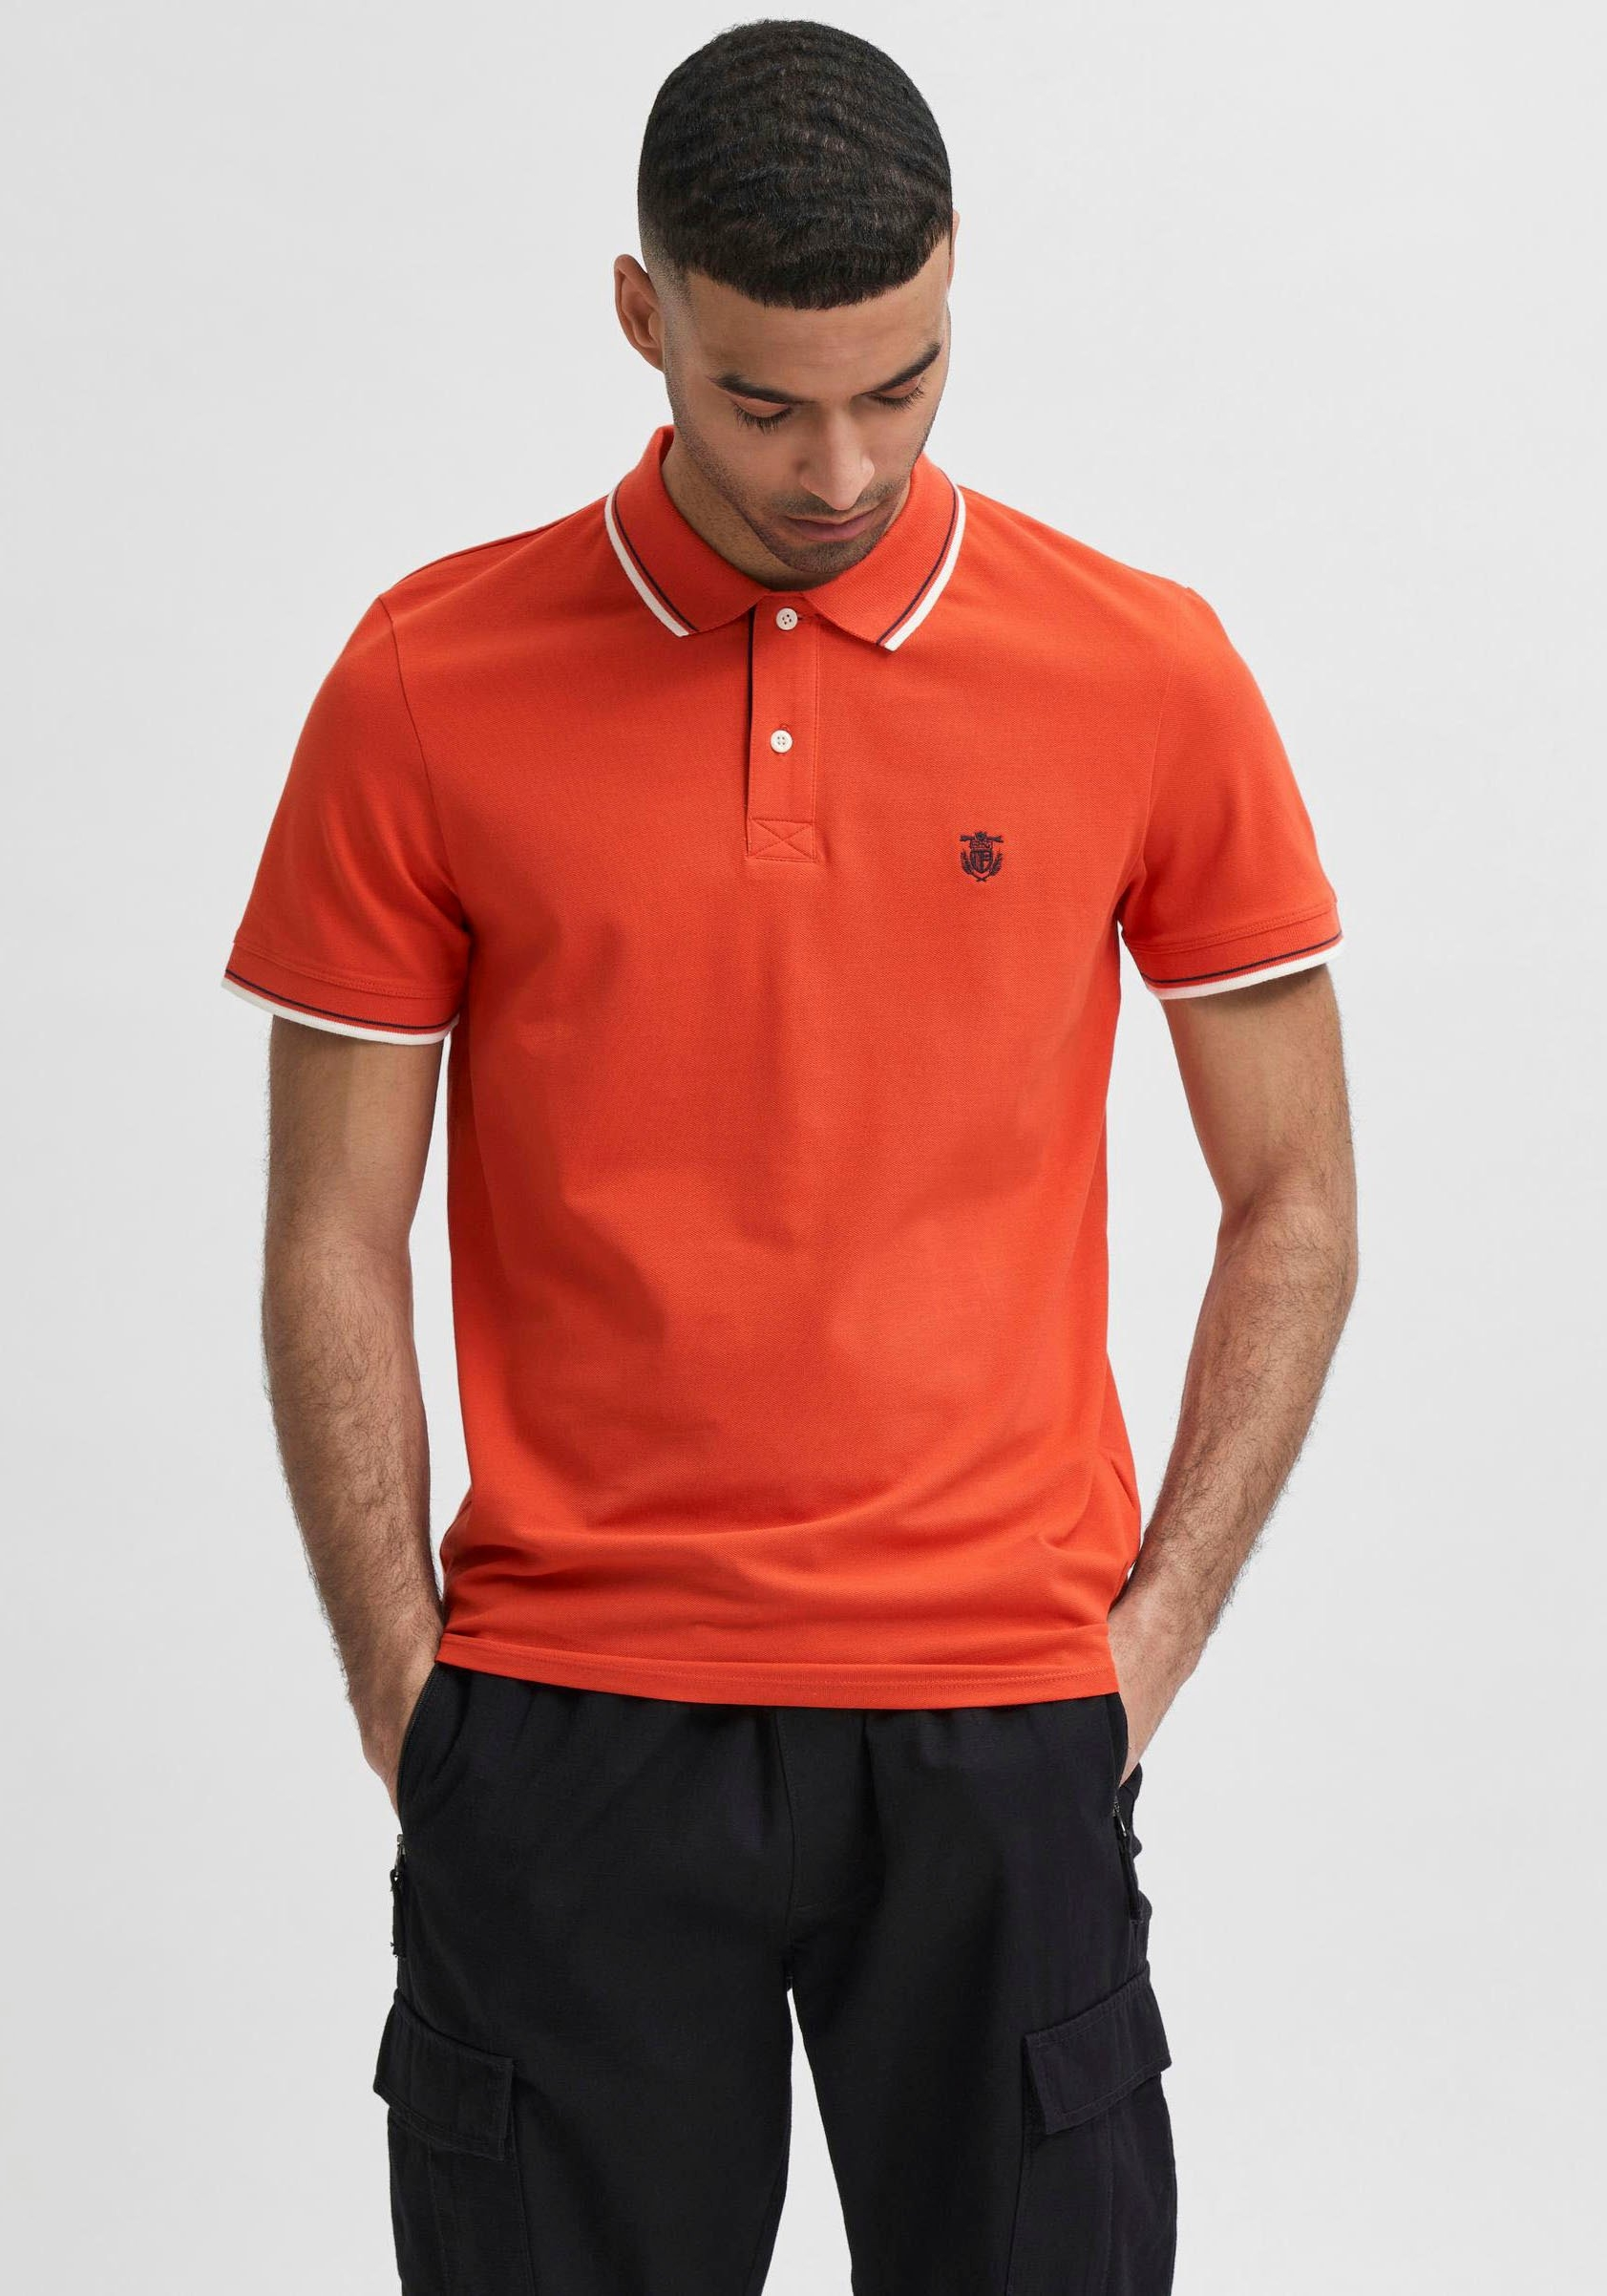 Selected Homme poloshirt »NEW SEASON POLO« - gratis ruilen op otto.nl